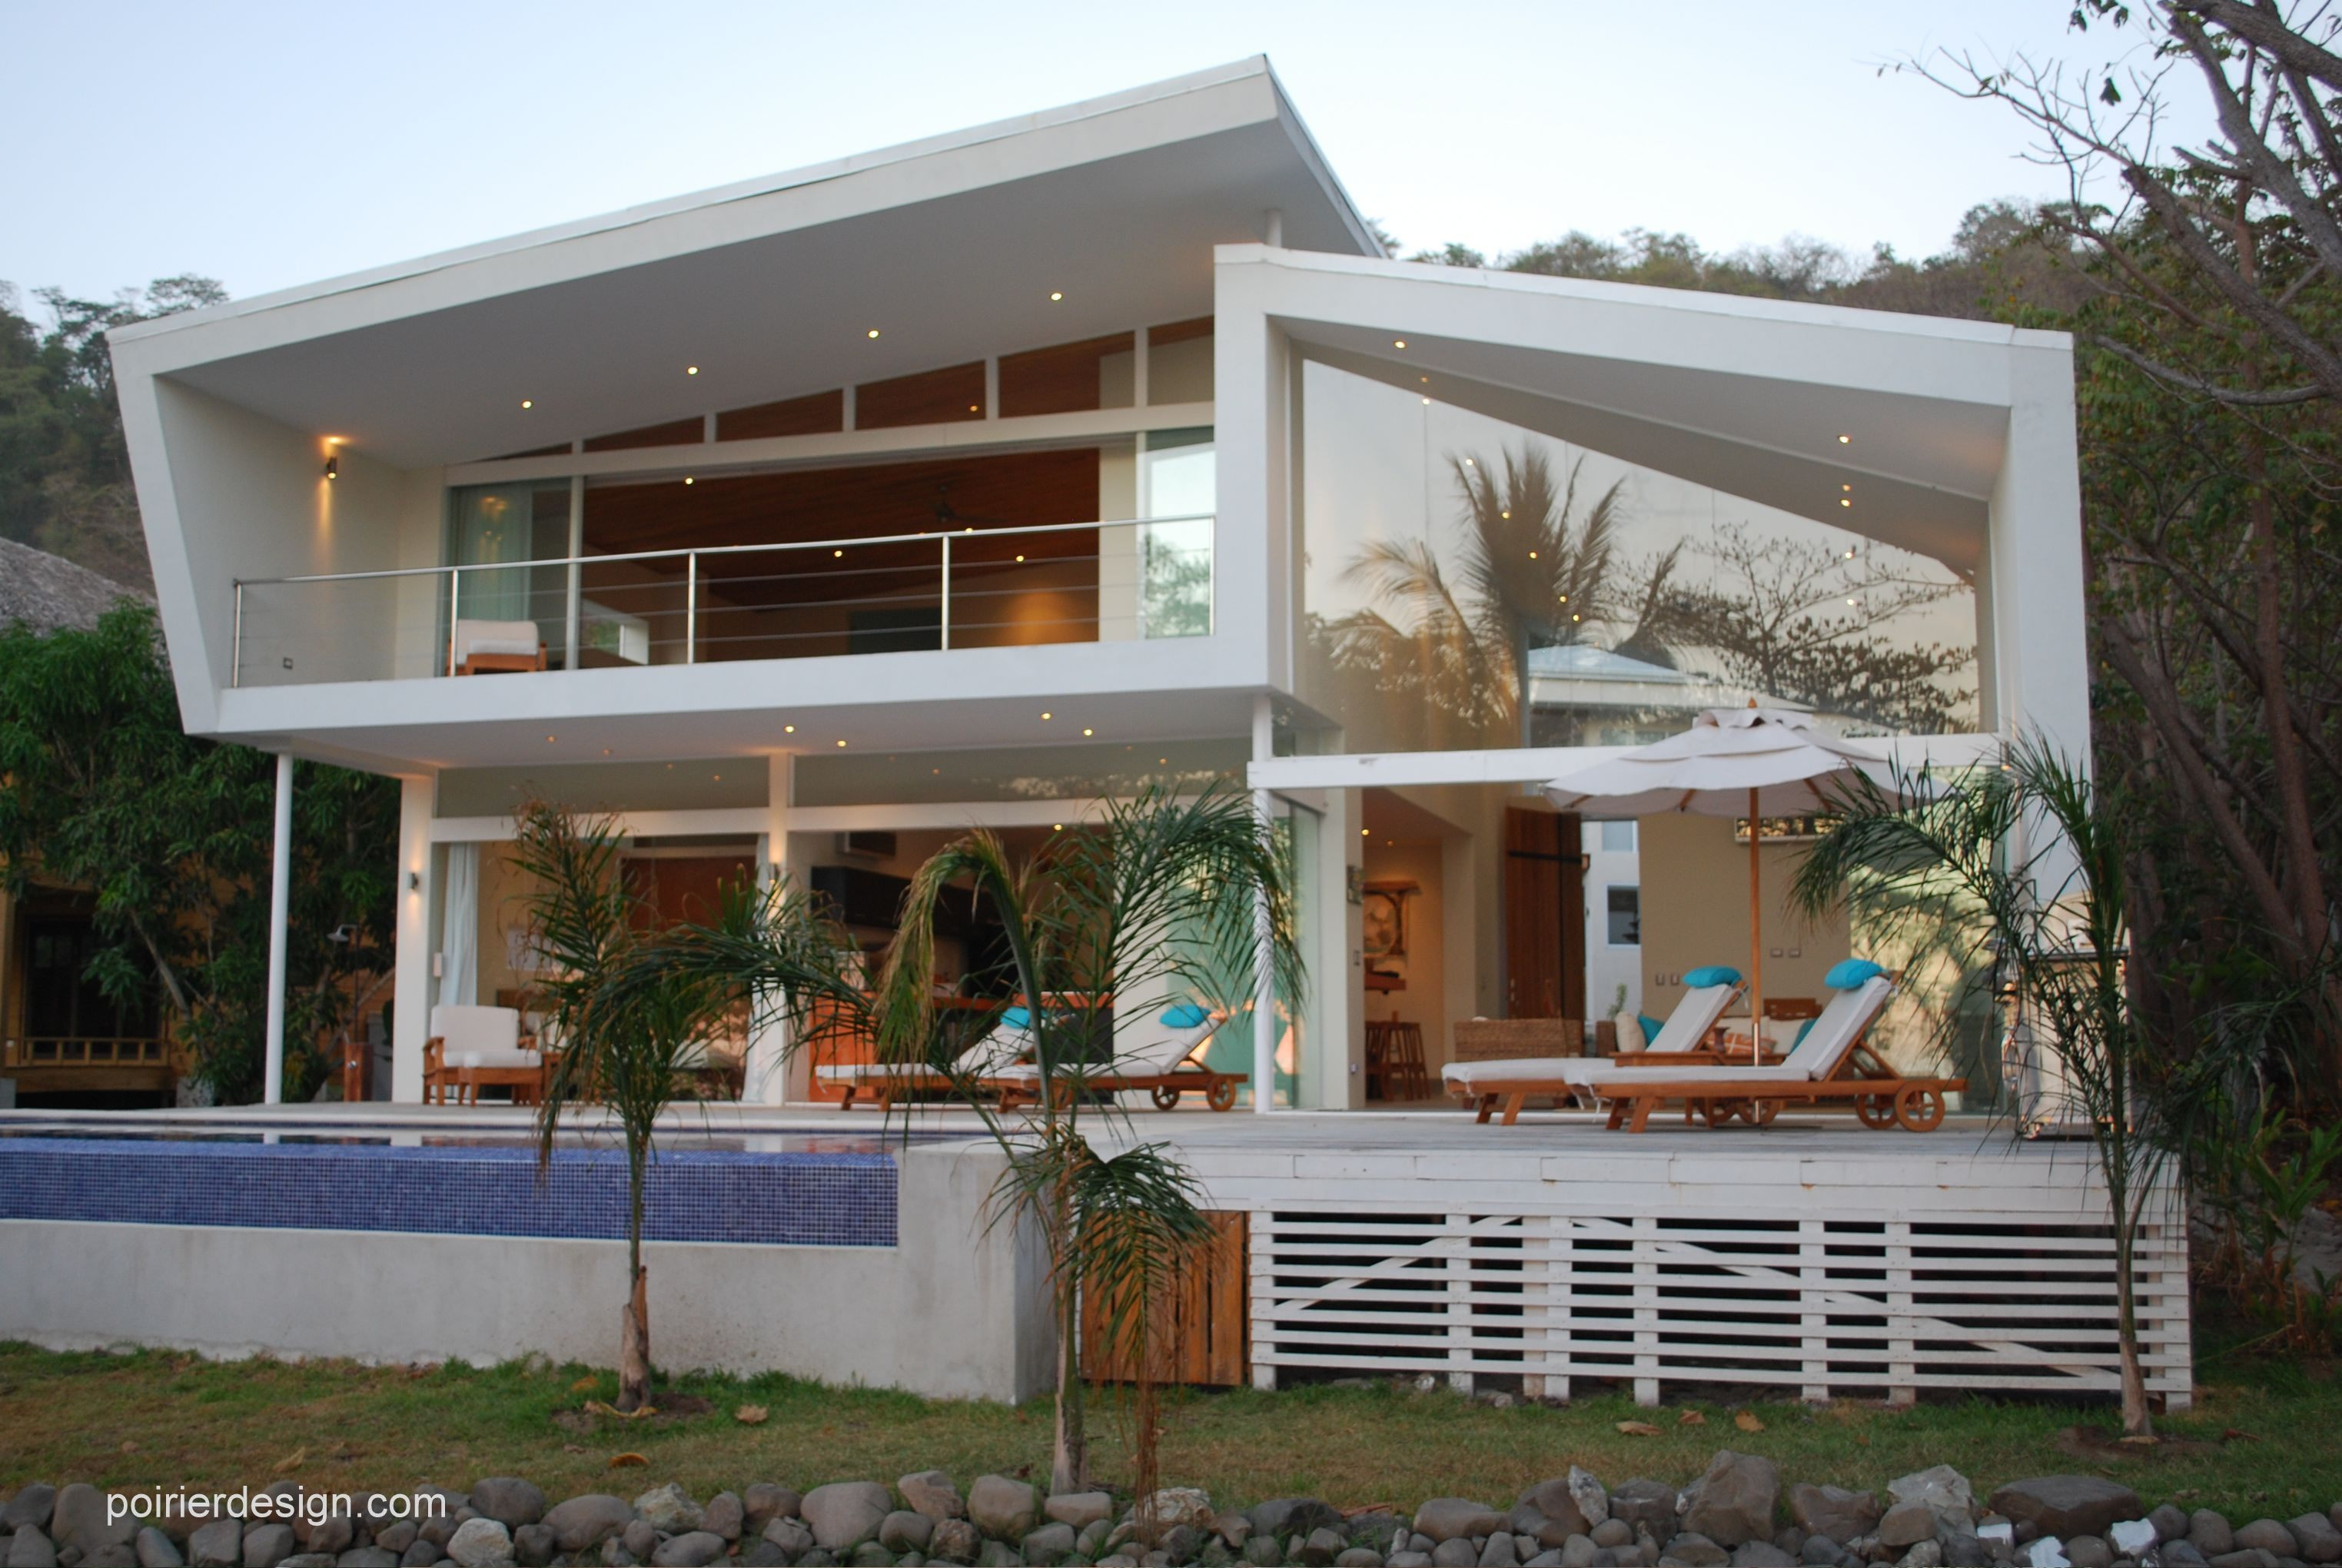 Poirier design the white house of costa rica for Beach architecture design